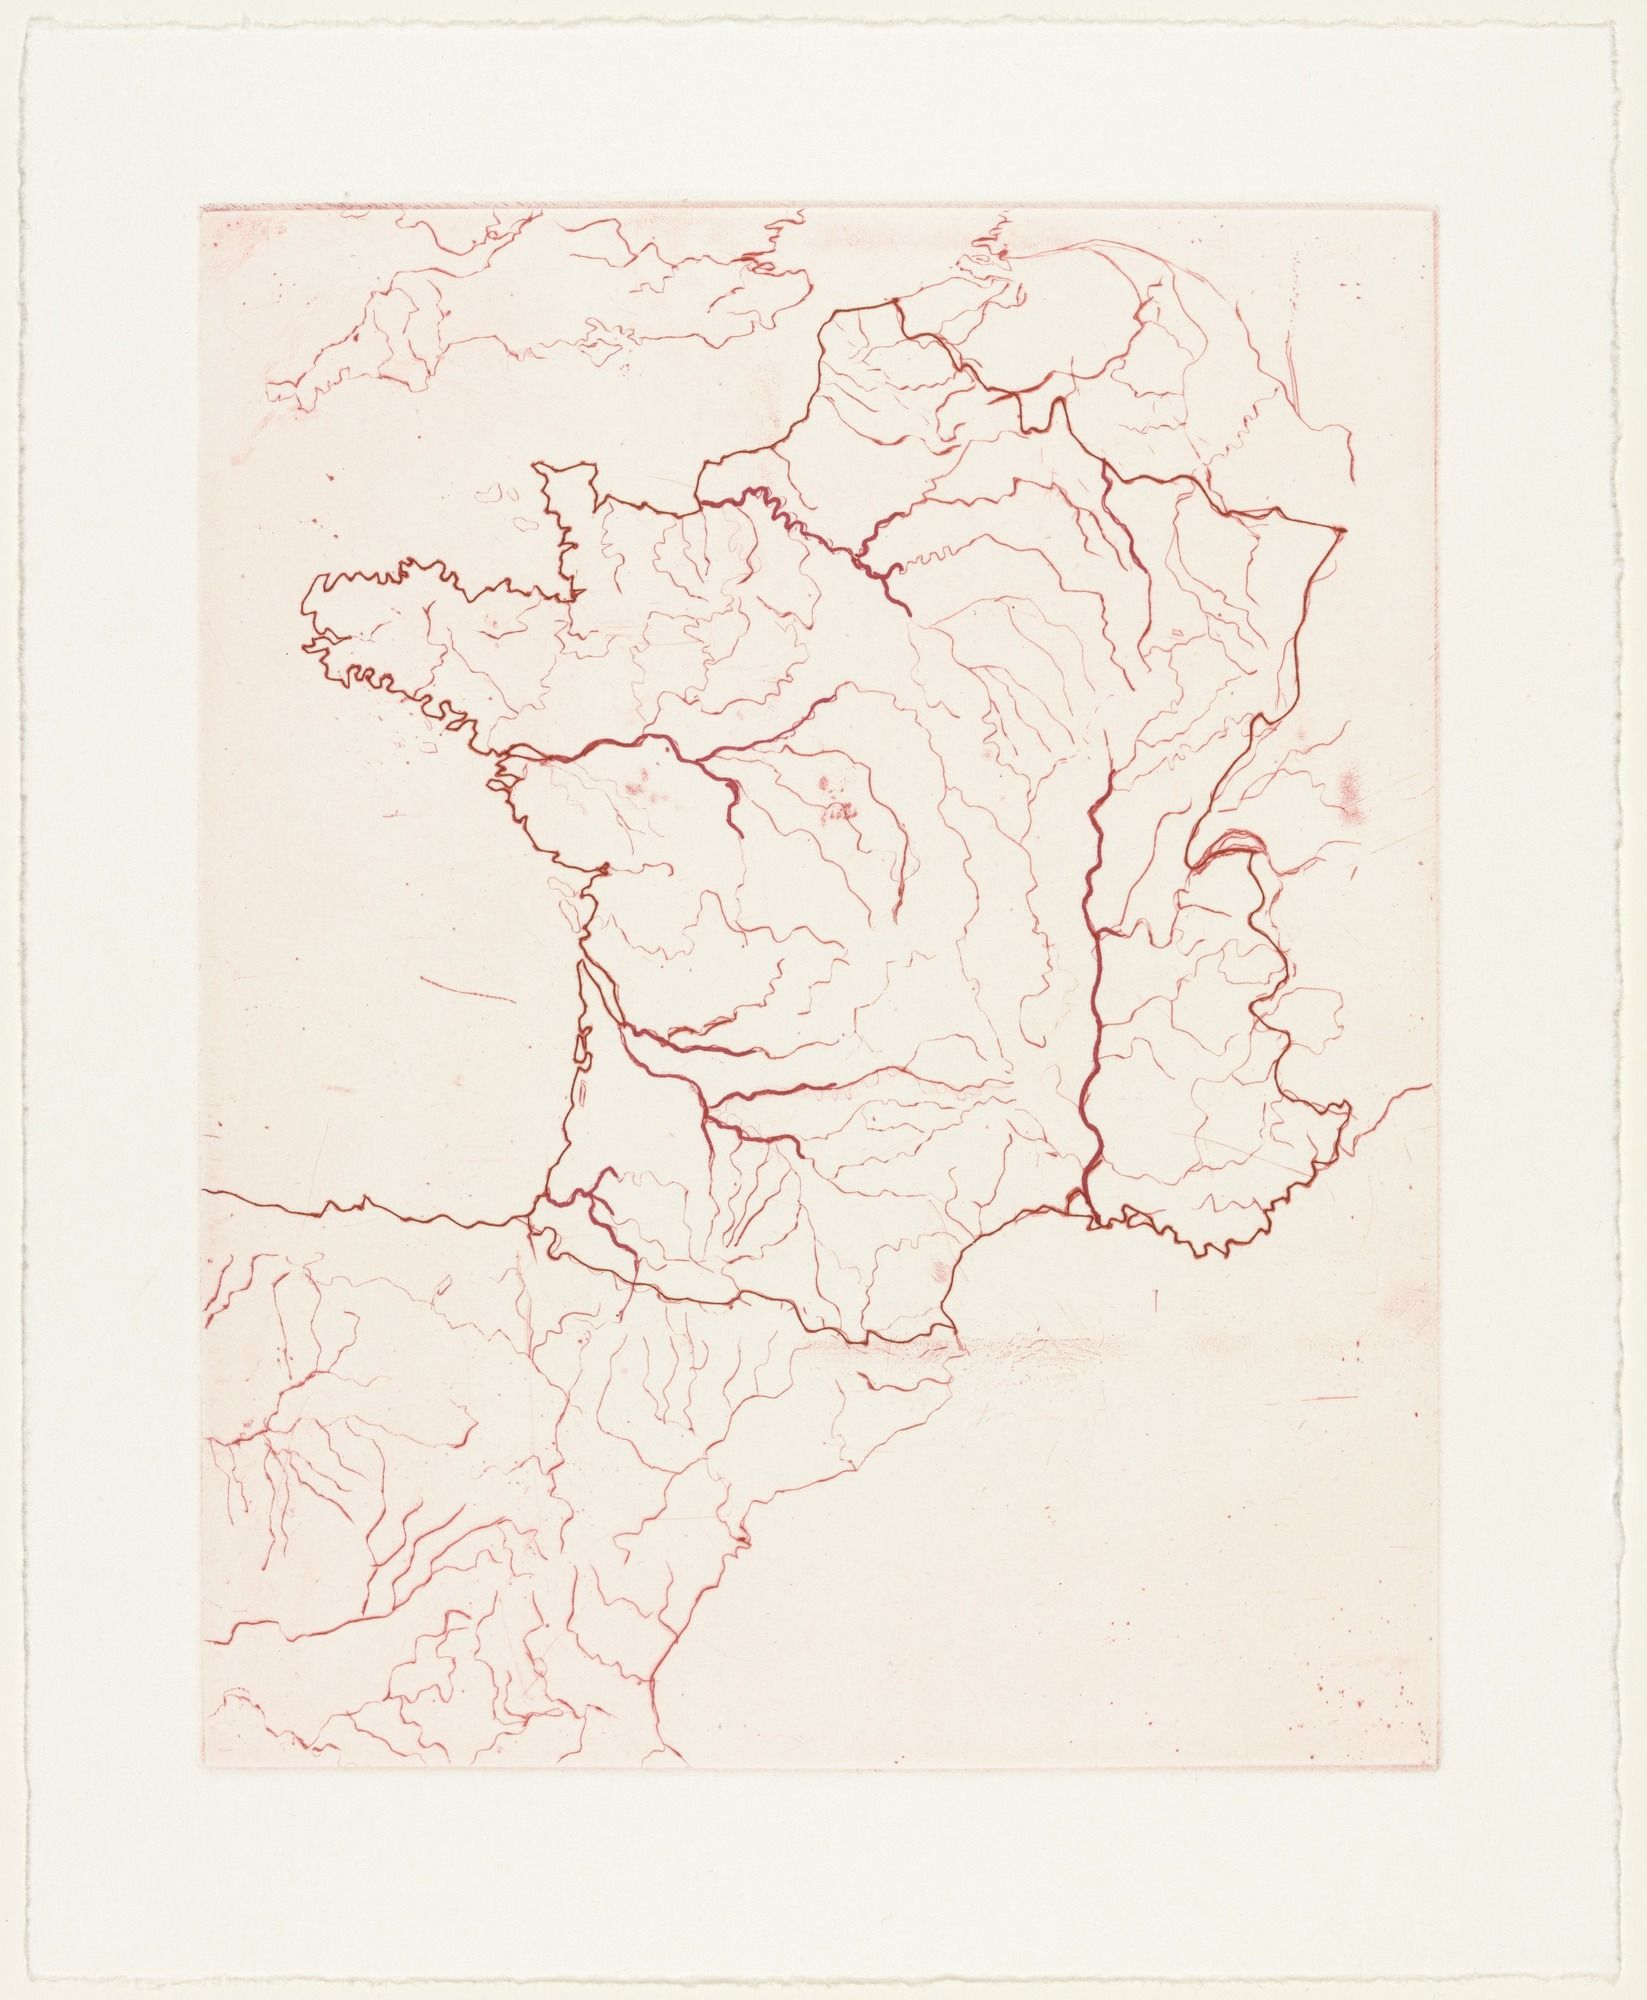 Louise Bourgeois. Untitled. 2000